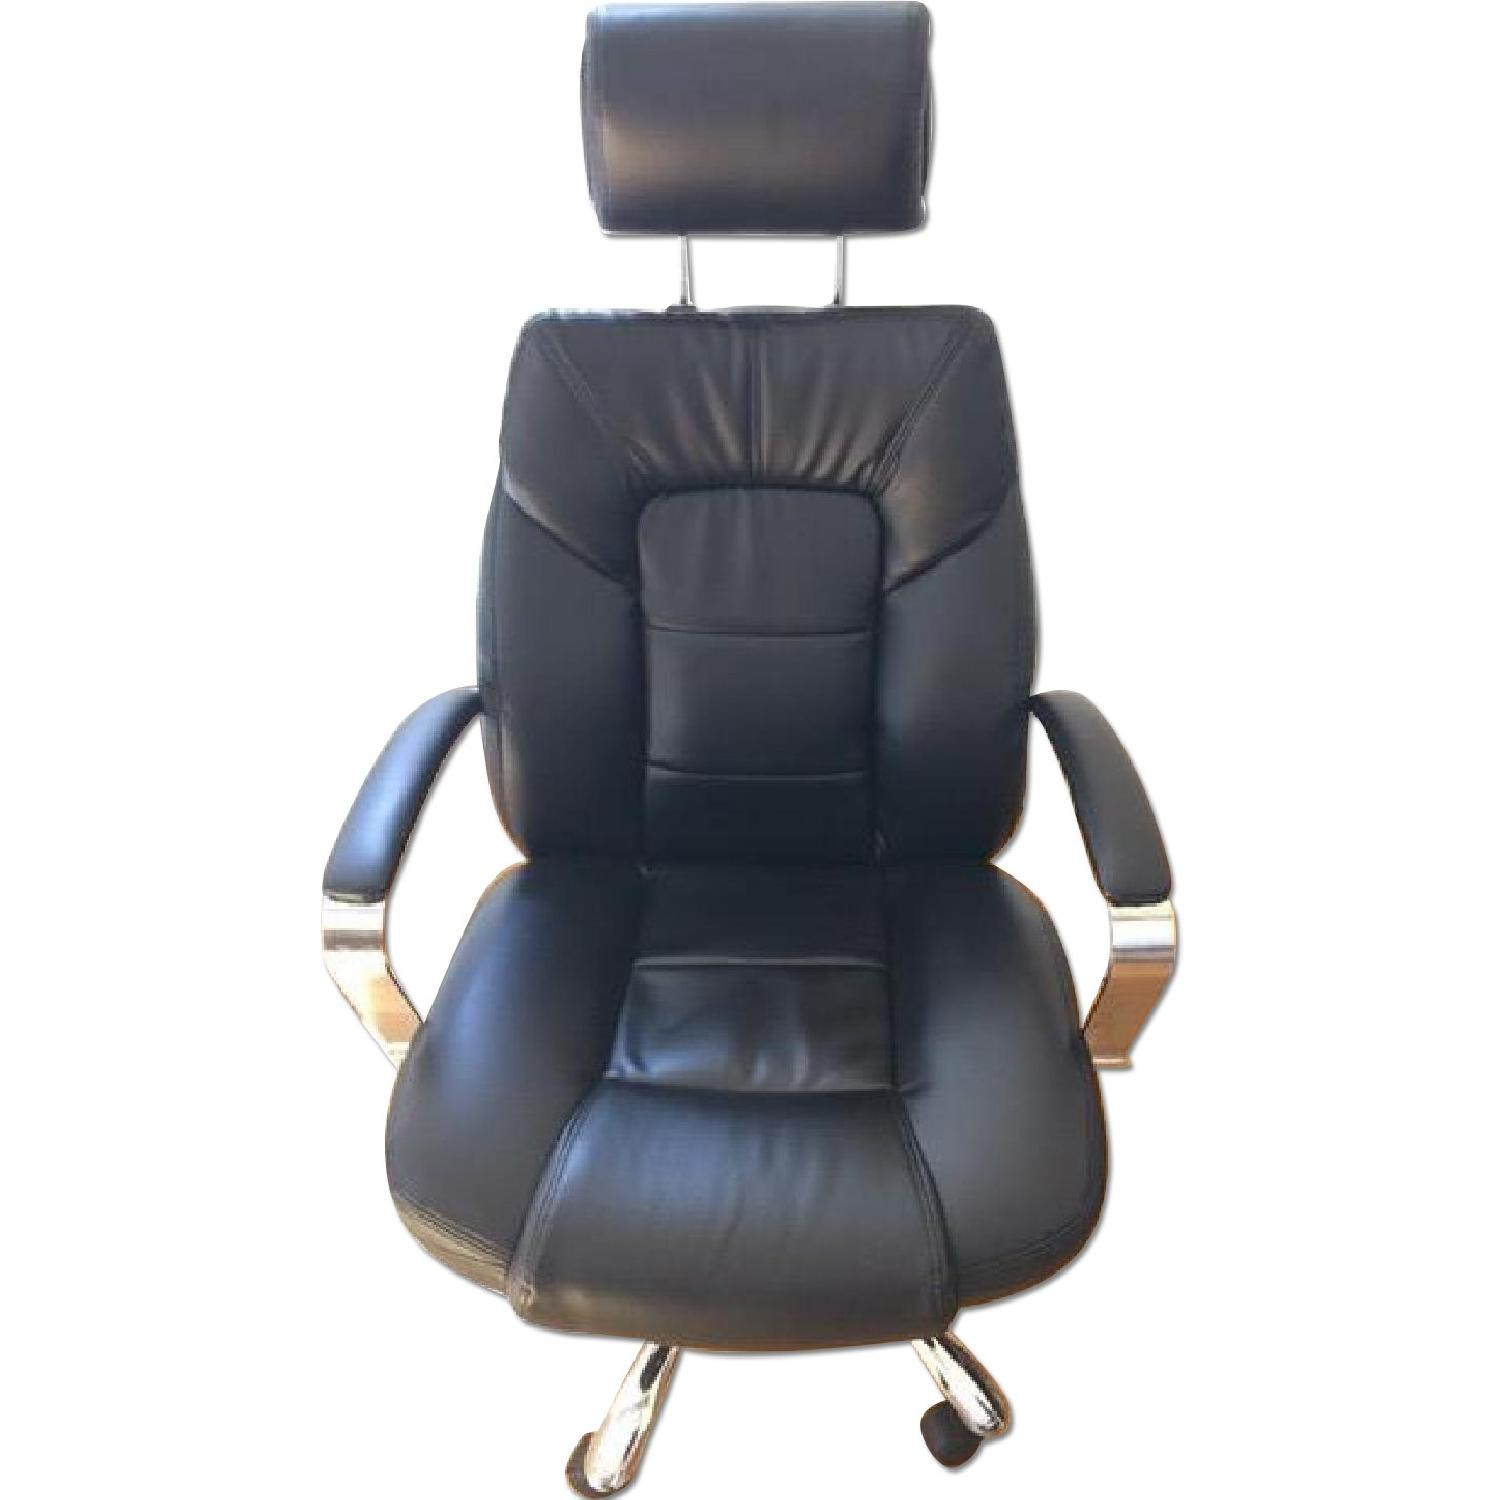 Oversize Leather Chair w/ Adjustable Headrest in Black - image-0